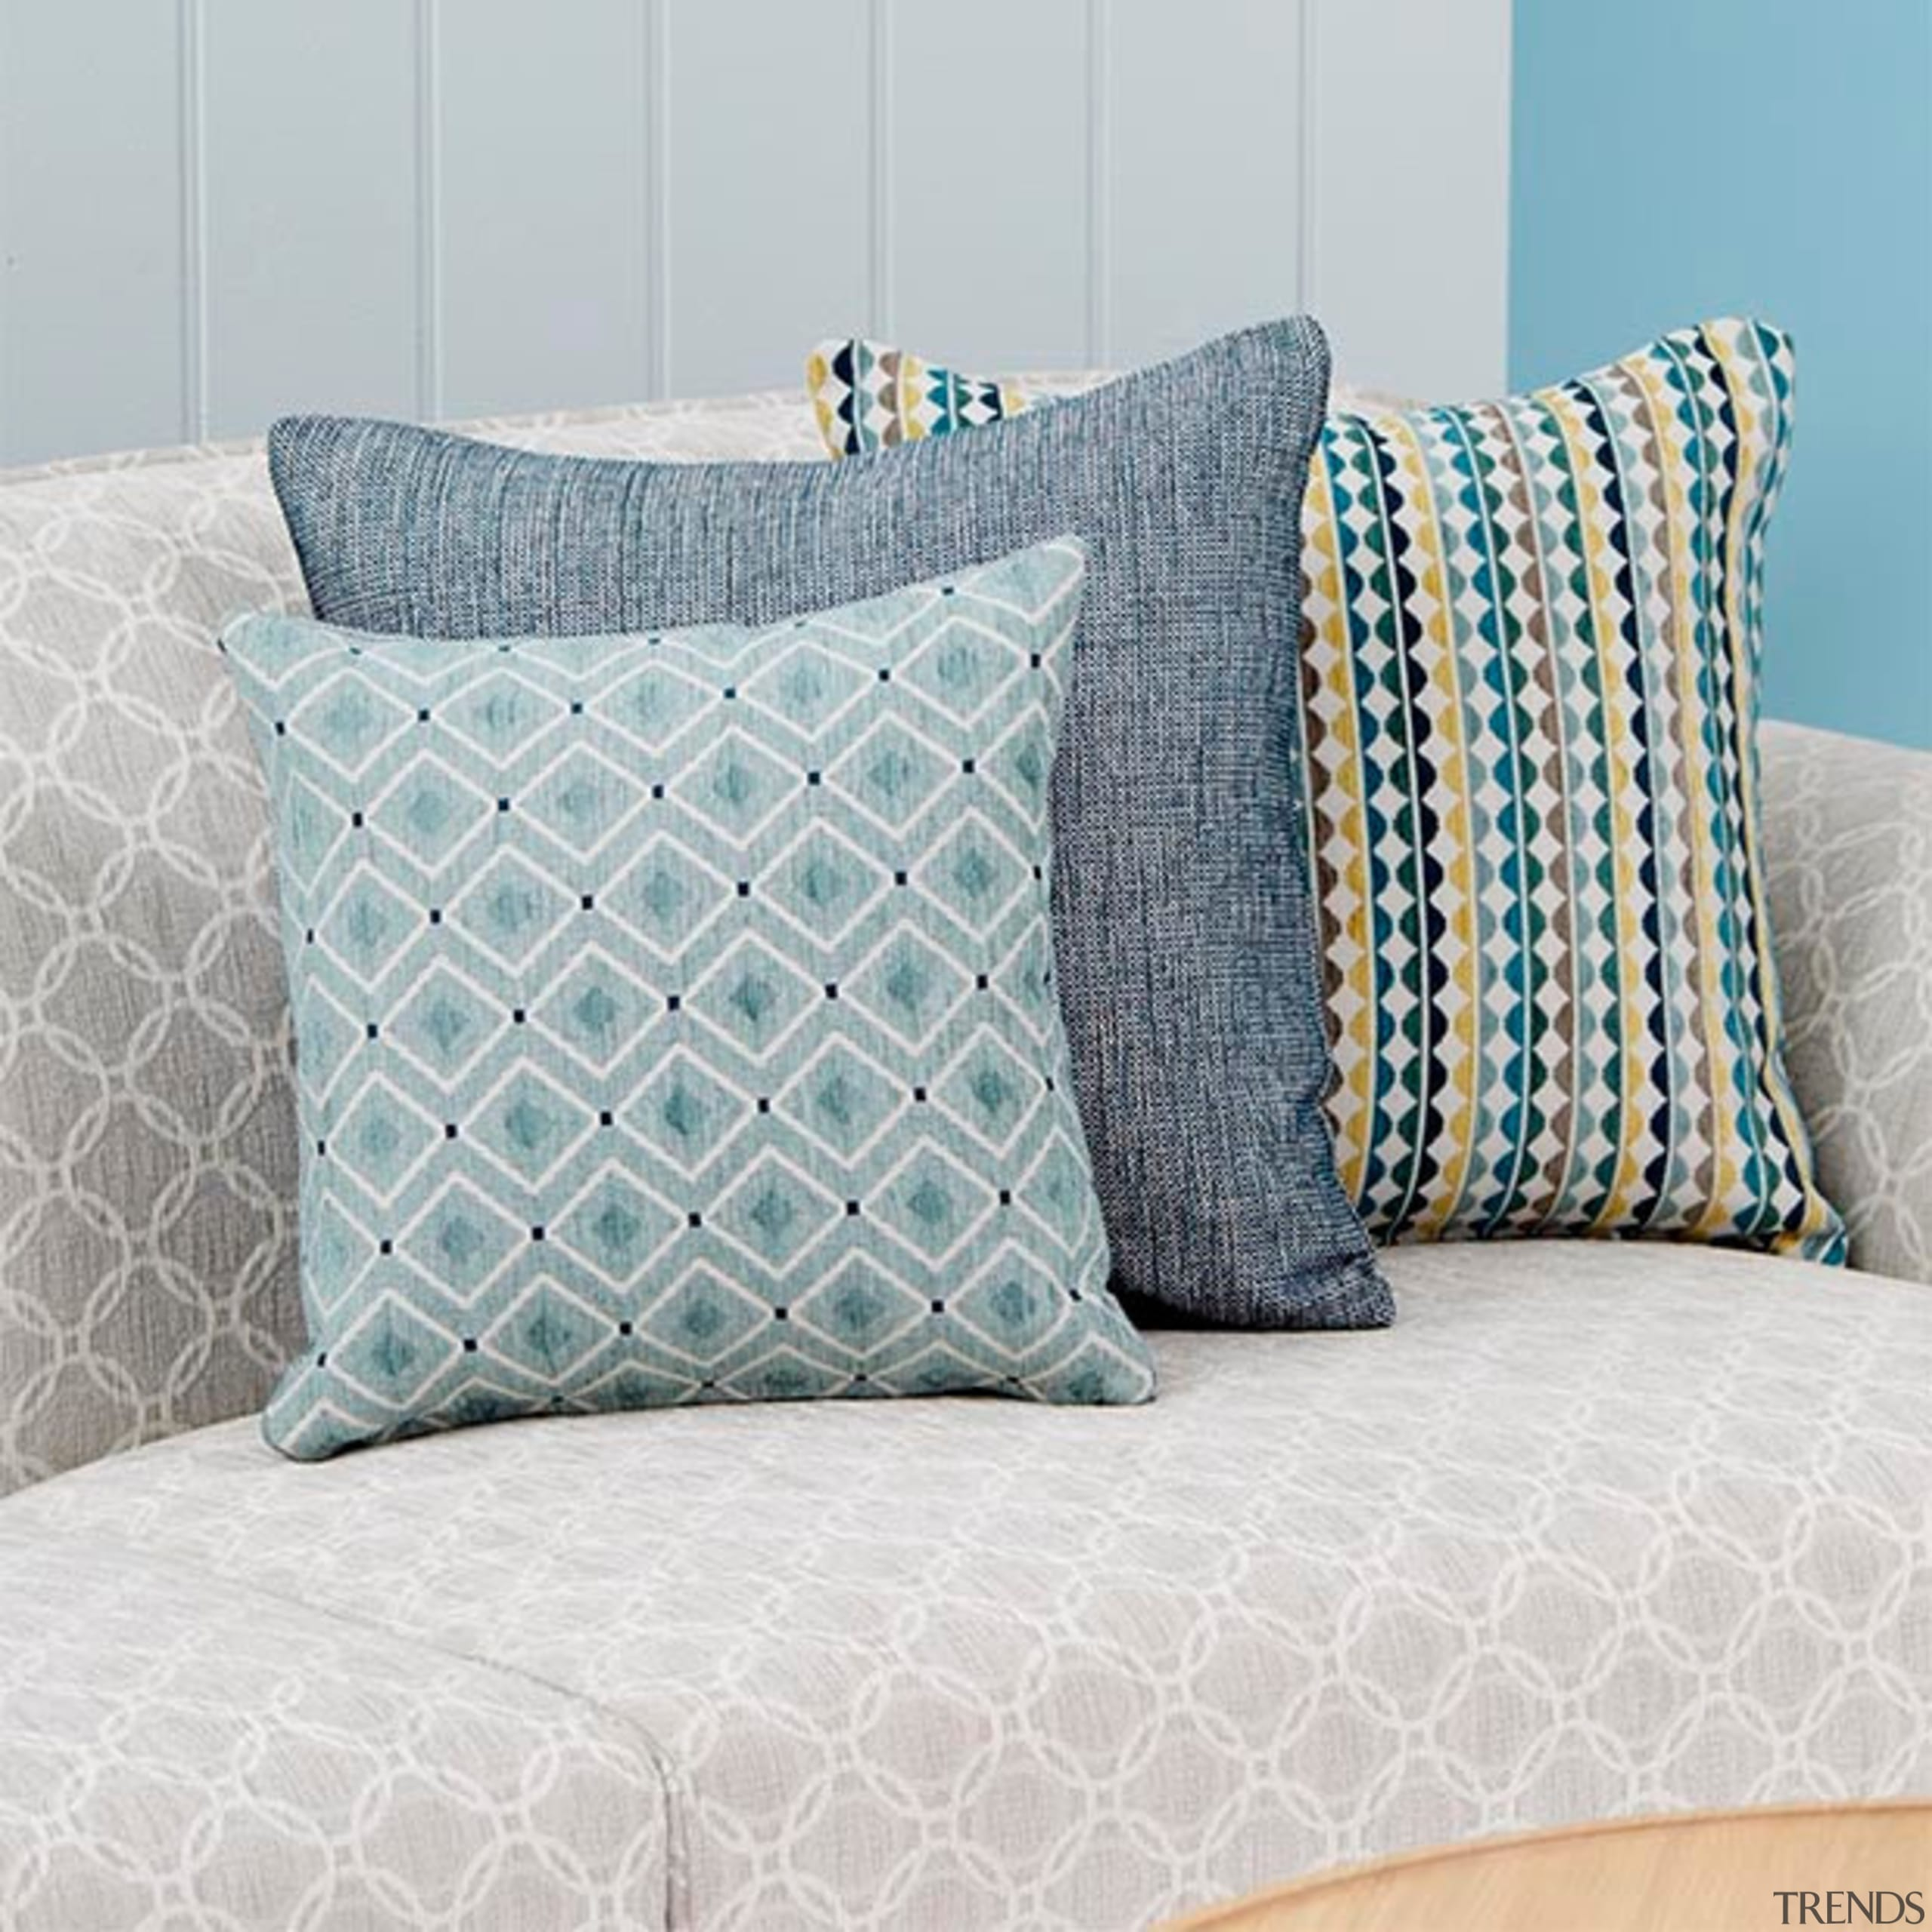 Bold, playful and unique, Nolan is a collection aqua, bed frame, bed sheet, bedding, cushion, duvet cover, furniture, linens, pattern, pillow, product, textile, throw pillow, turquoise, gray, white